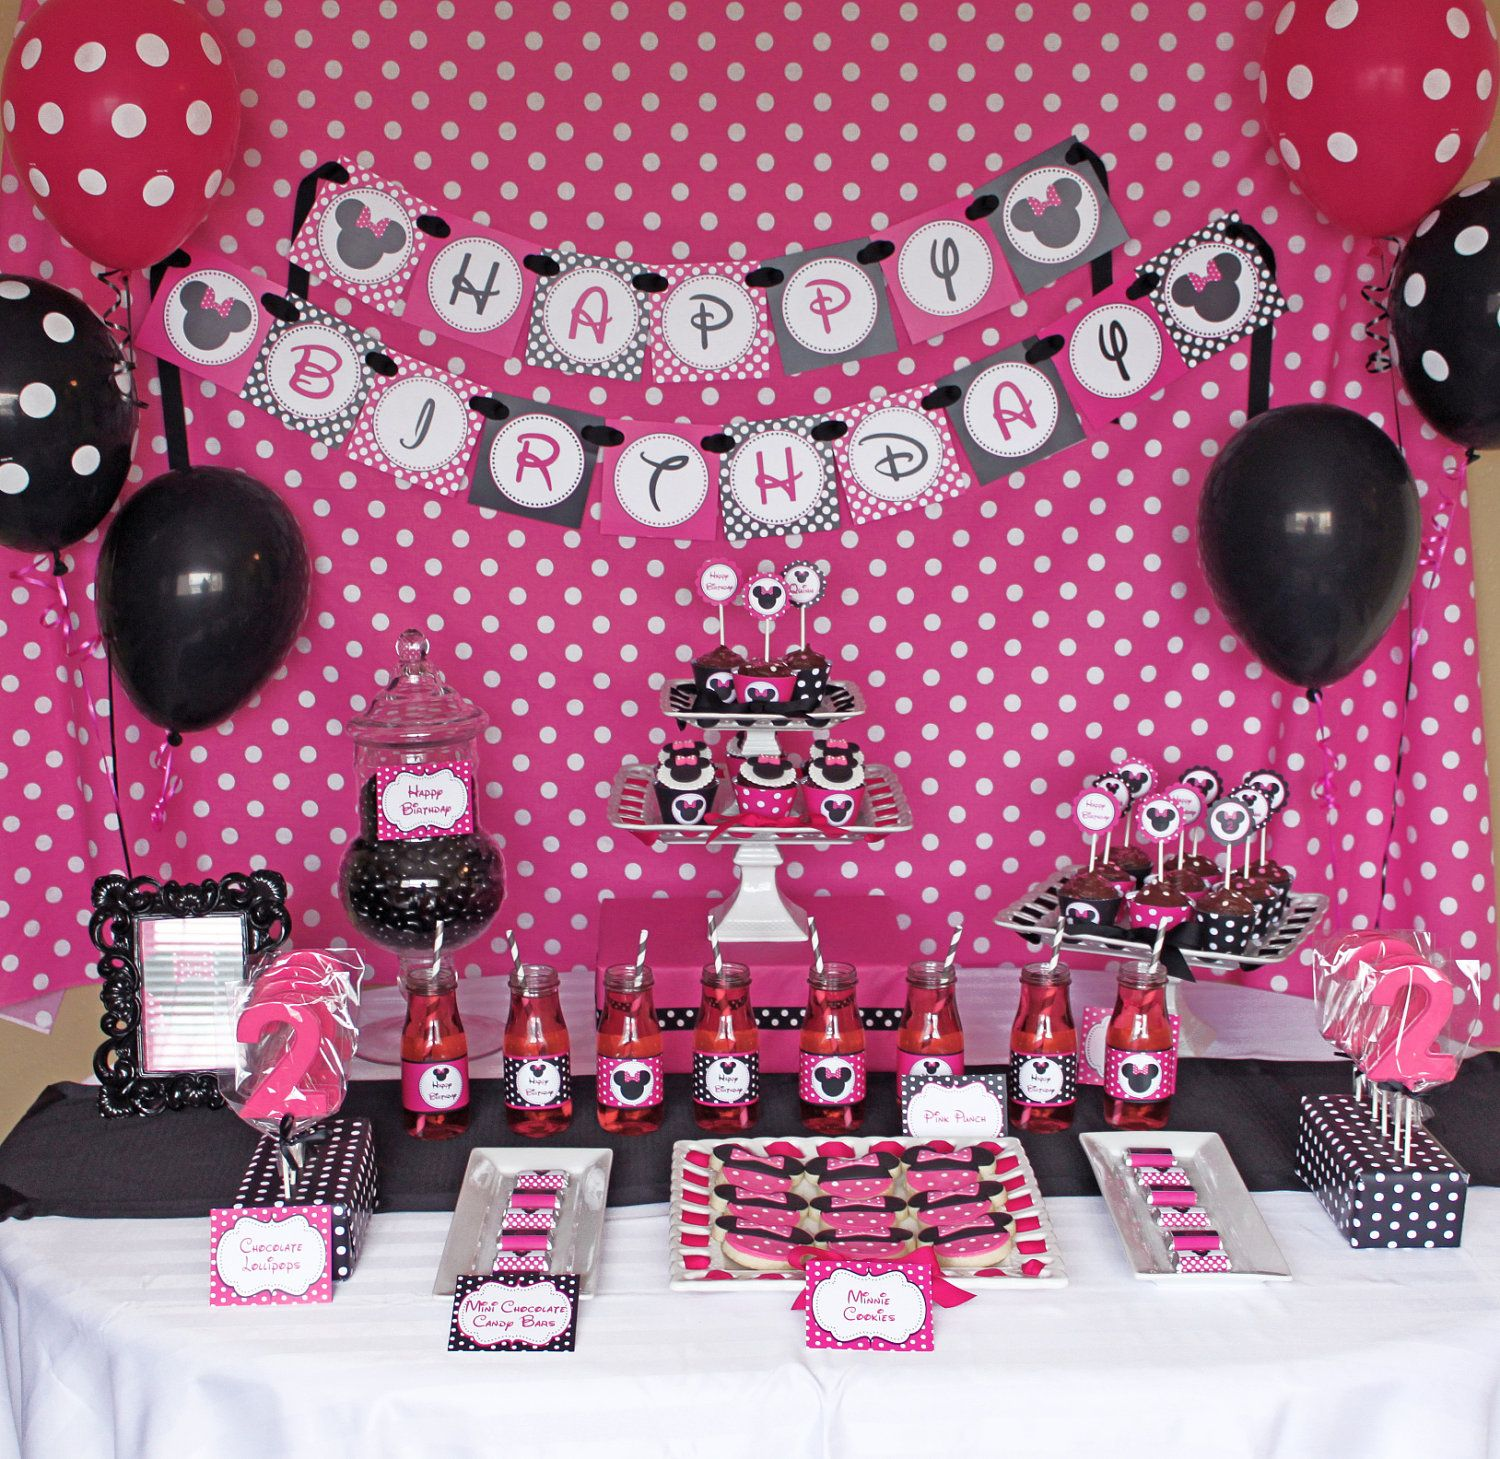 Diy minnie mouse pink deluxe printable birthday party package diy minnie mouse pink deluxe printable birthday party package 3500 via etsy amipublicfo Choice Image